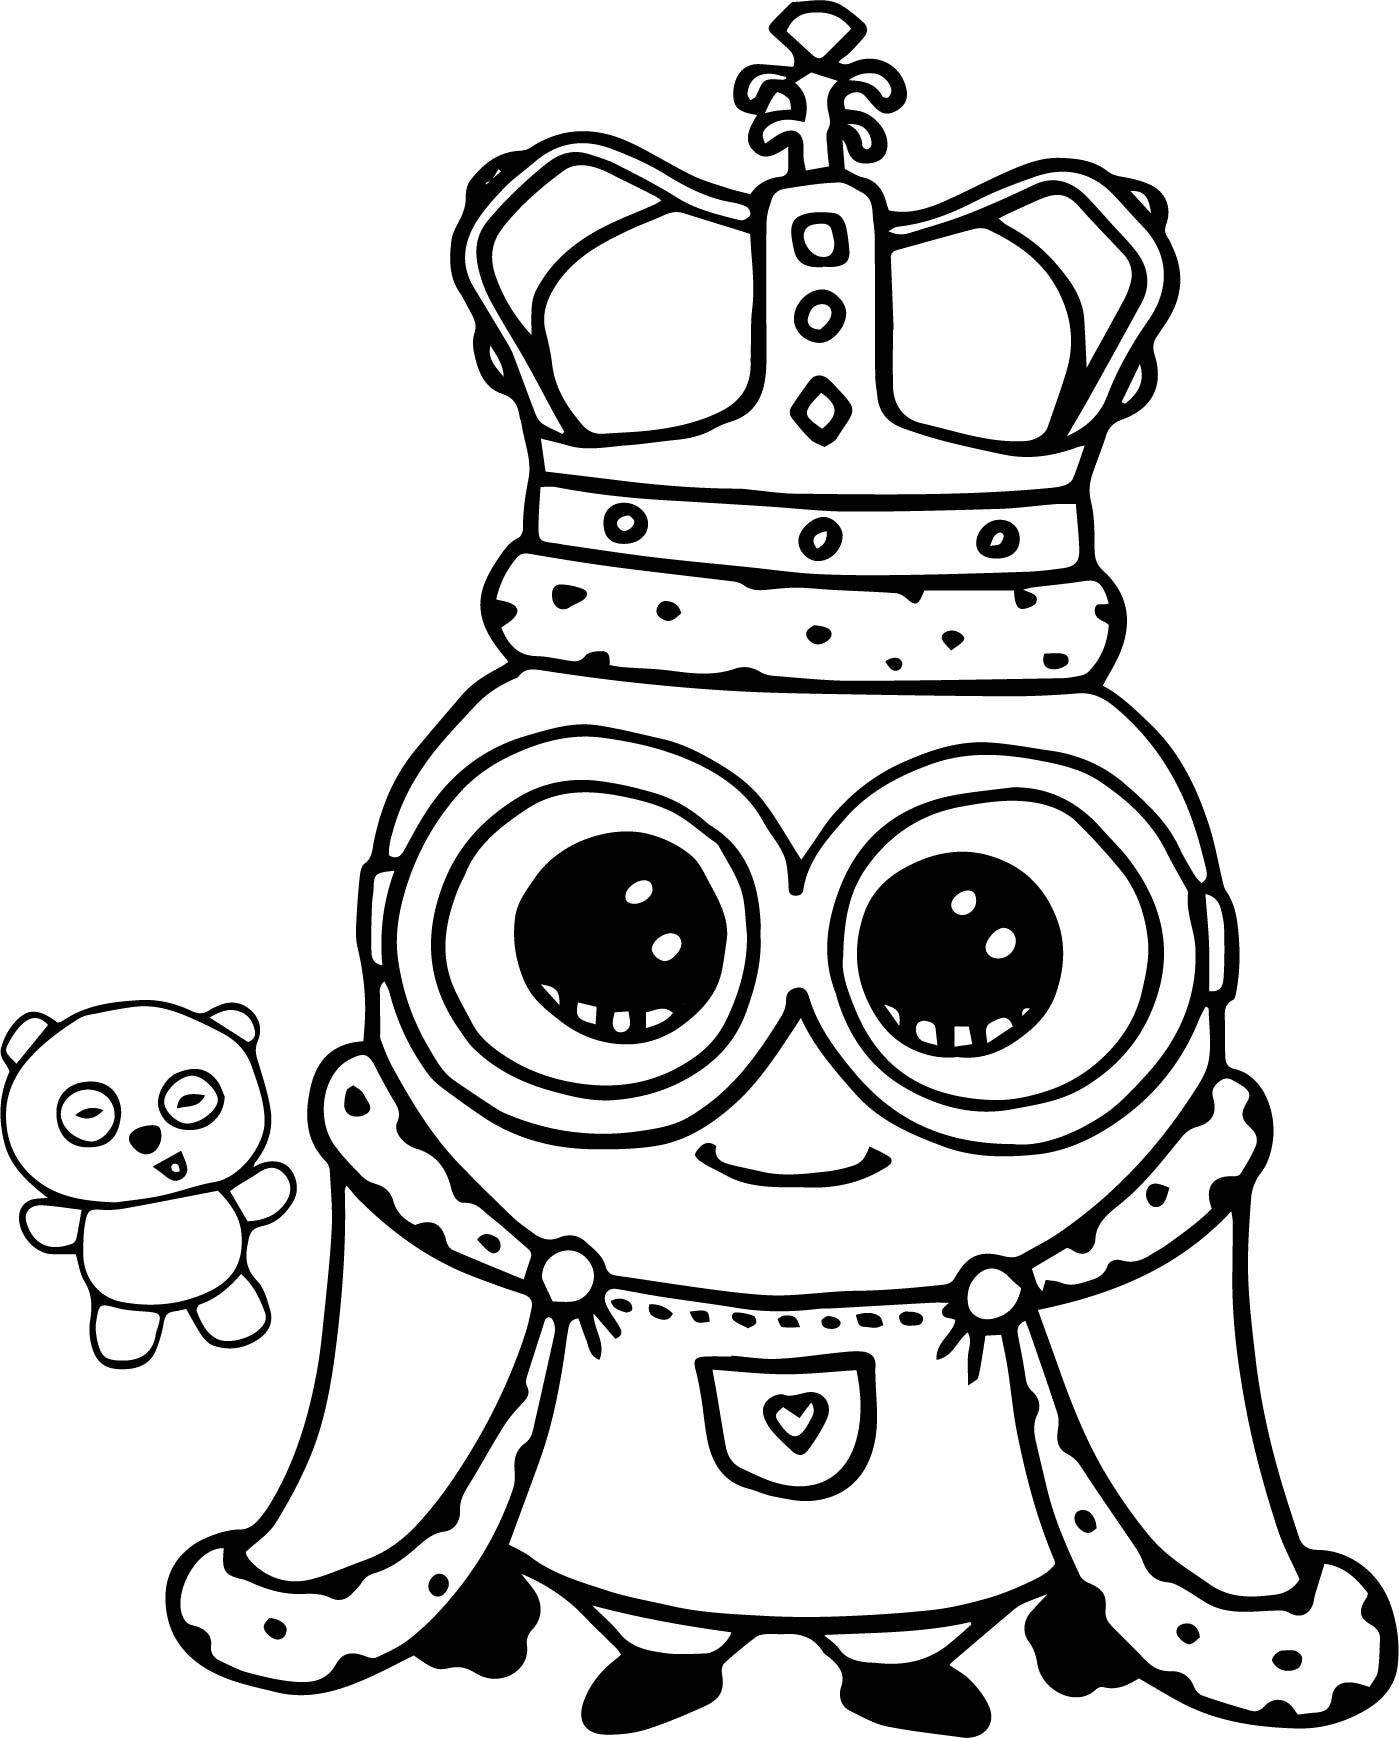 color in pictures zootopia coloring pages best coloring pages for kids in color pictures